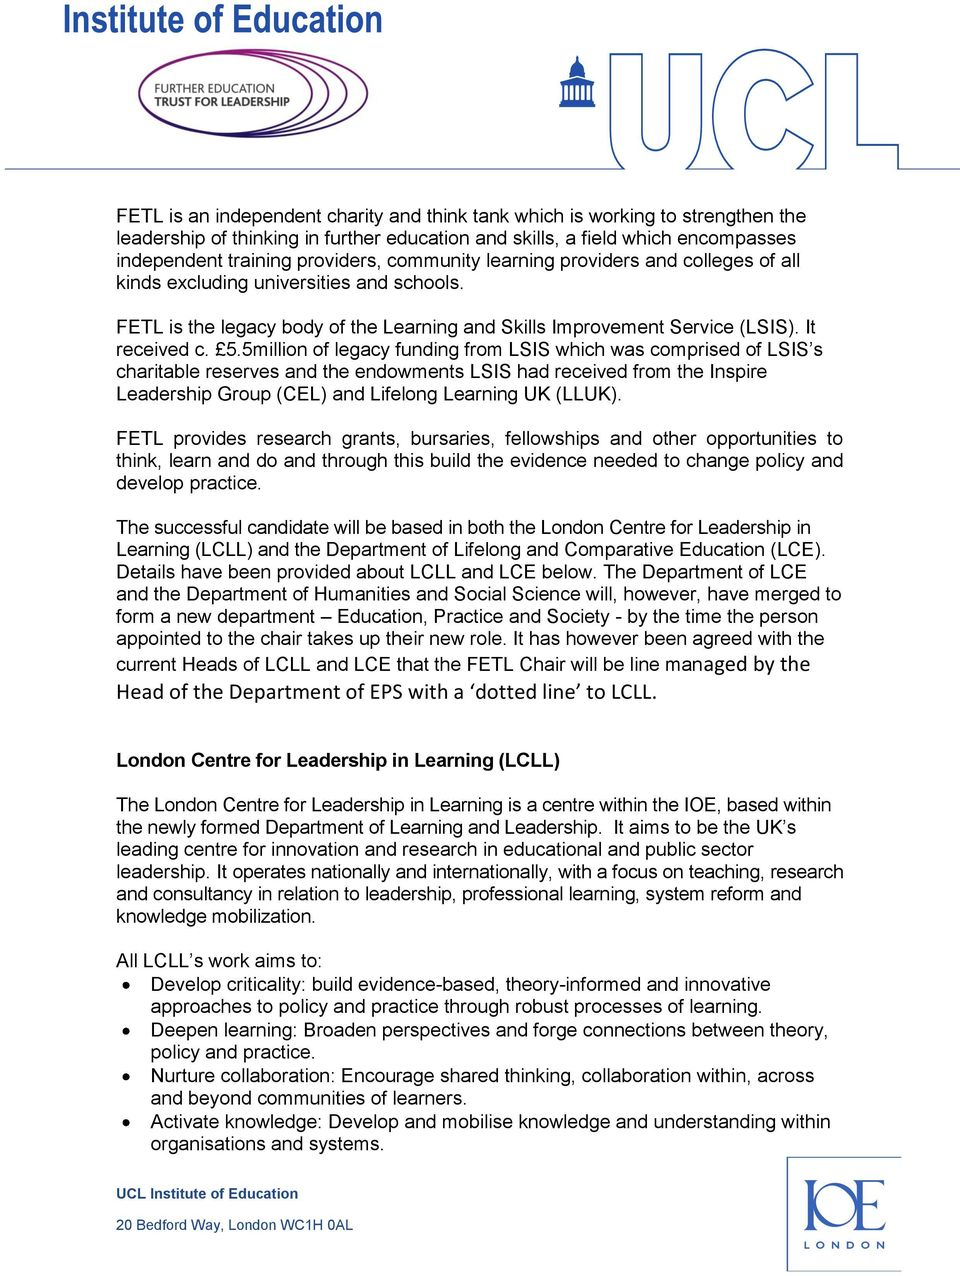 5million of legacy funding from LSIS which was comprised of LSIS s charitable reserves and the endowments LSIS had received from the Inspire Leadership Group (CEL) and Lifelong Learning UK (LLUK).